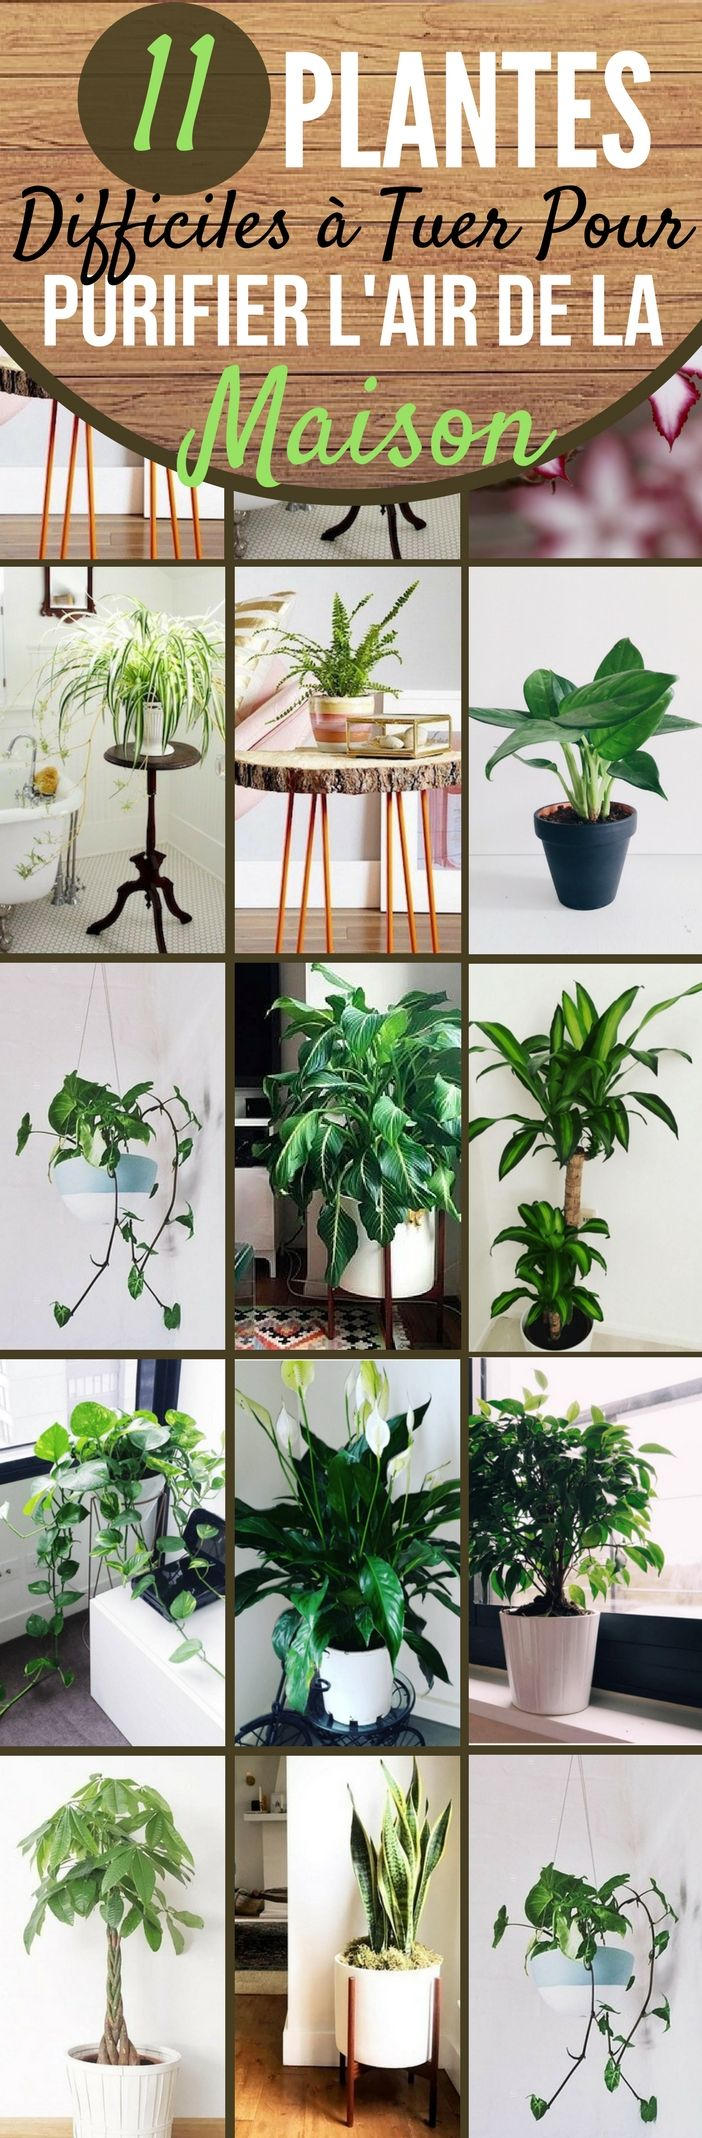 best 25 air plants ideas on pinterest air plant display. Black Bedroom Furniture Sets. Home Design Ideas